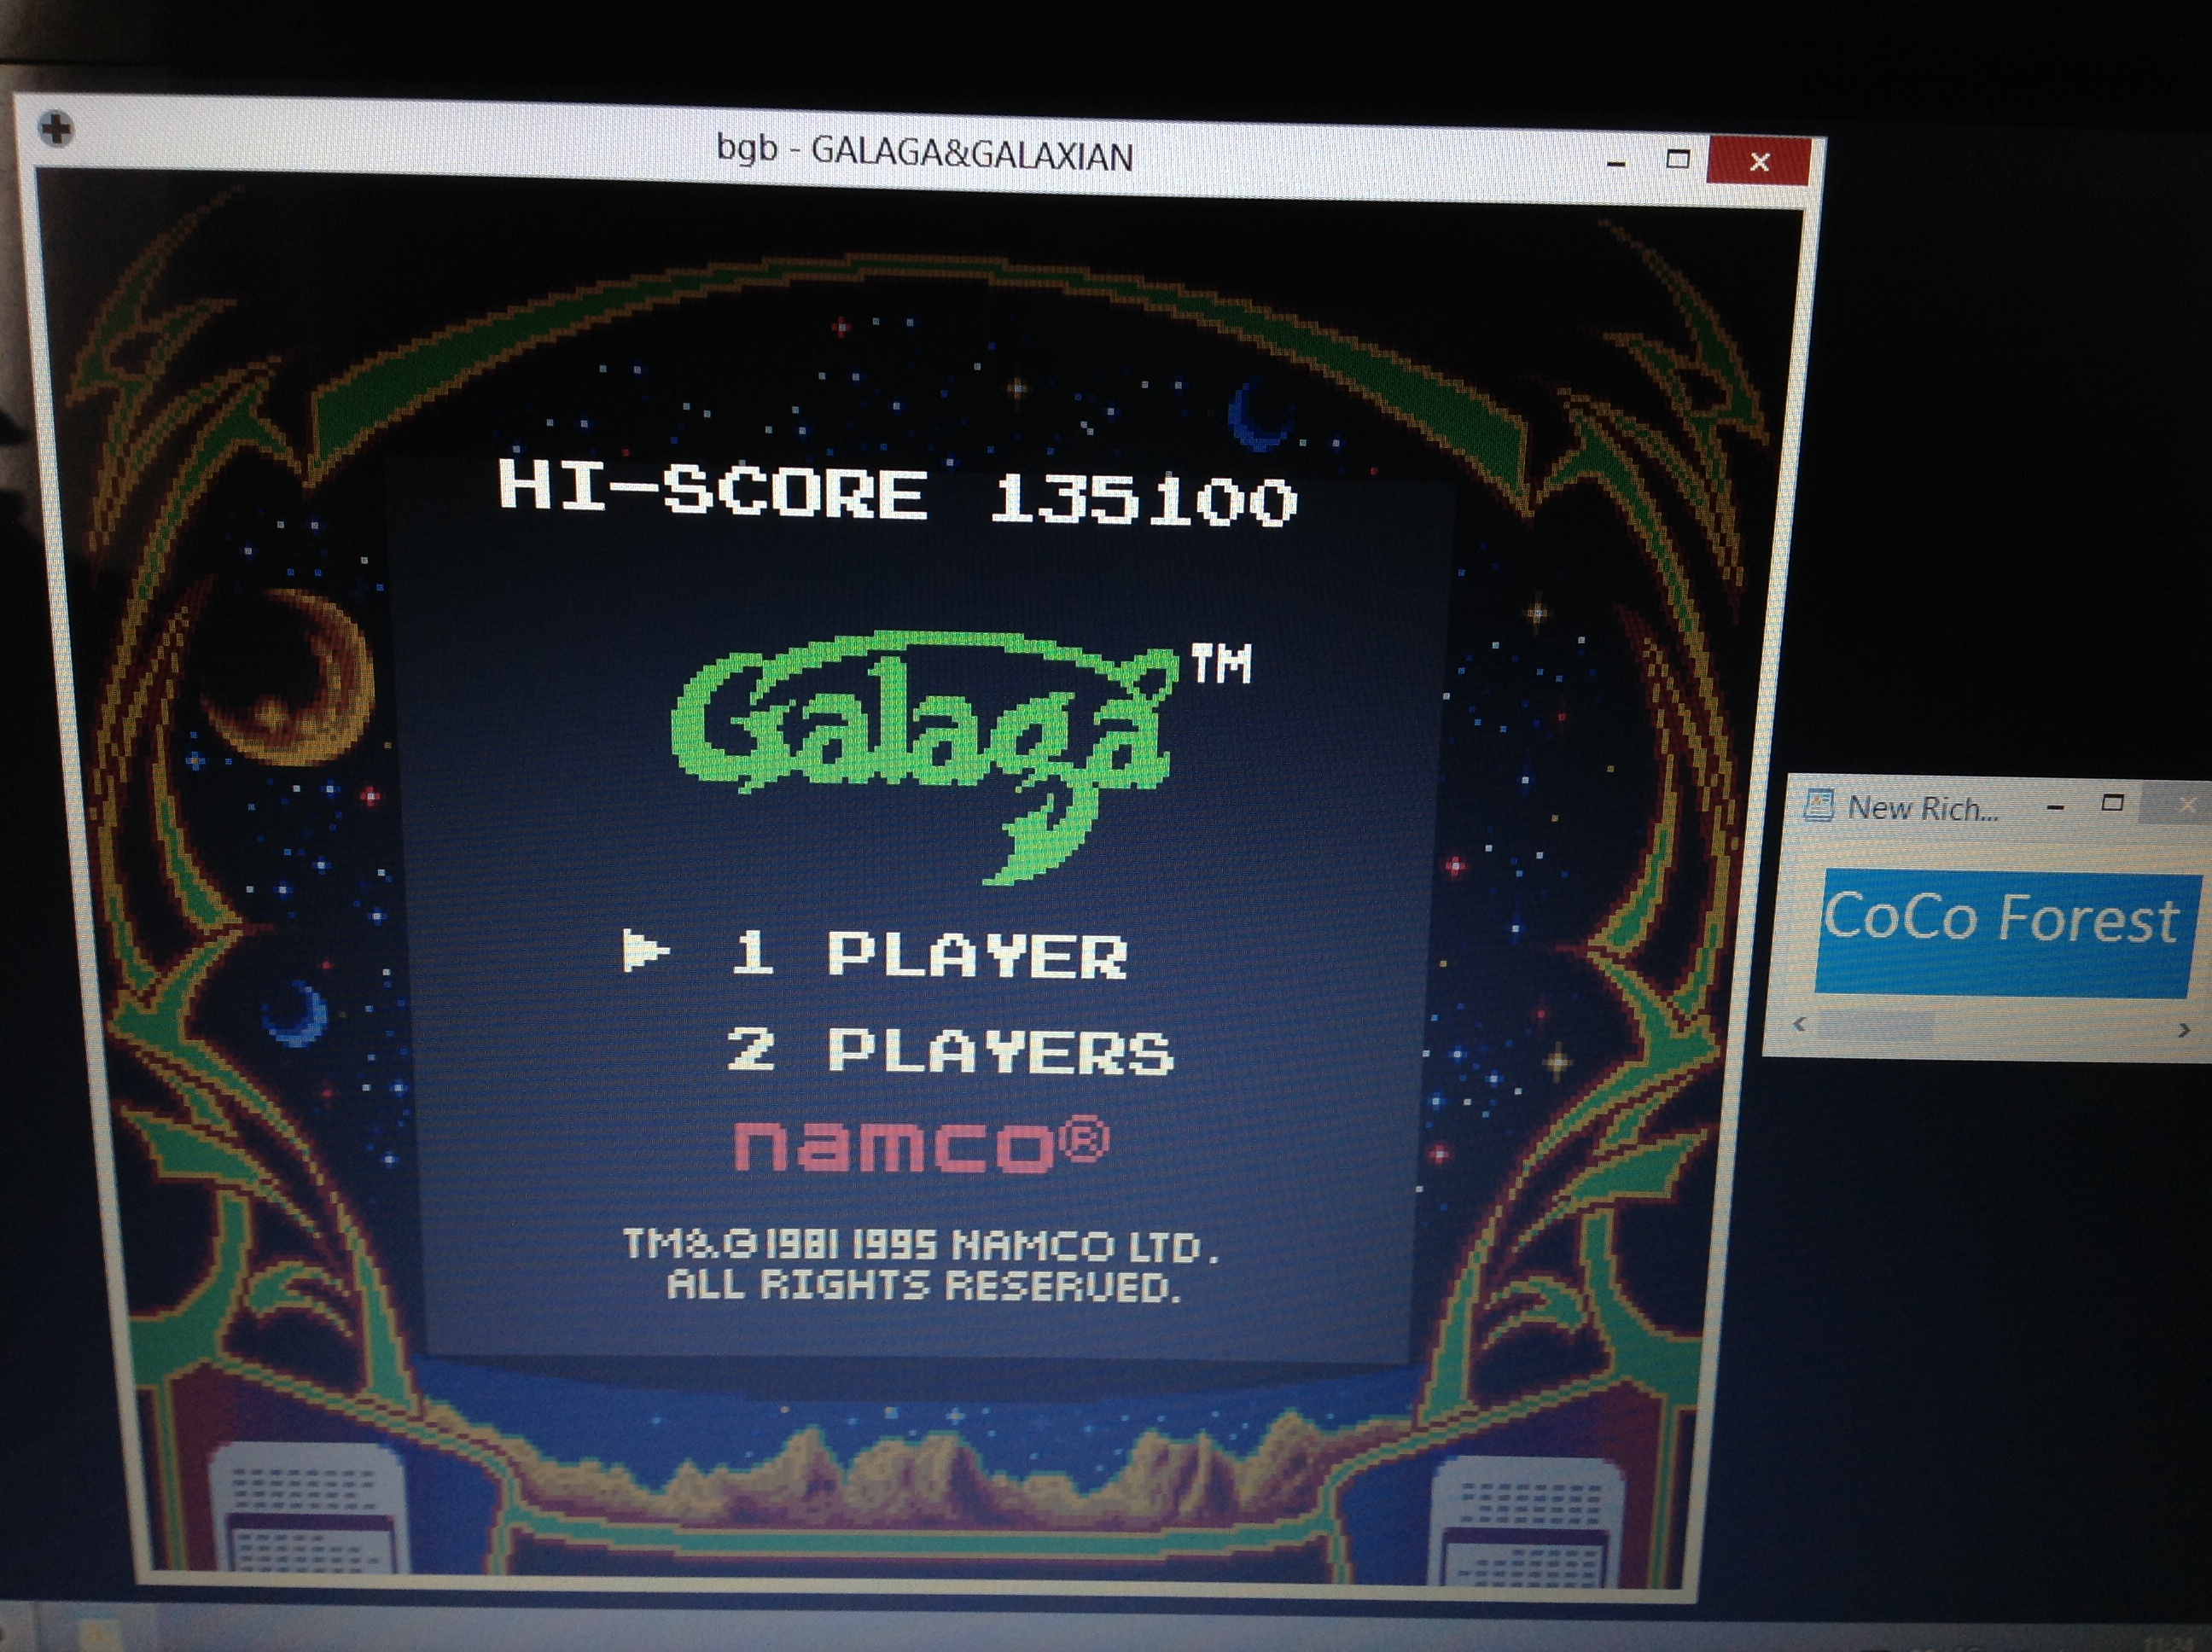 CoCoForest: Galaga (Game Boy Emulated) 135,100 points on 2018-10-13 05:25:25